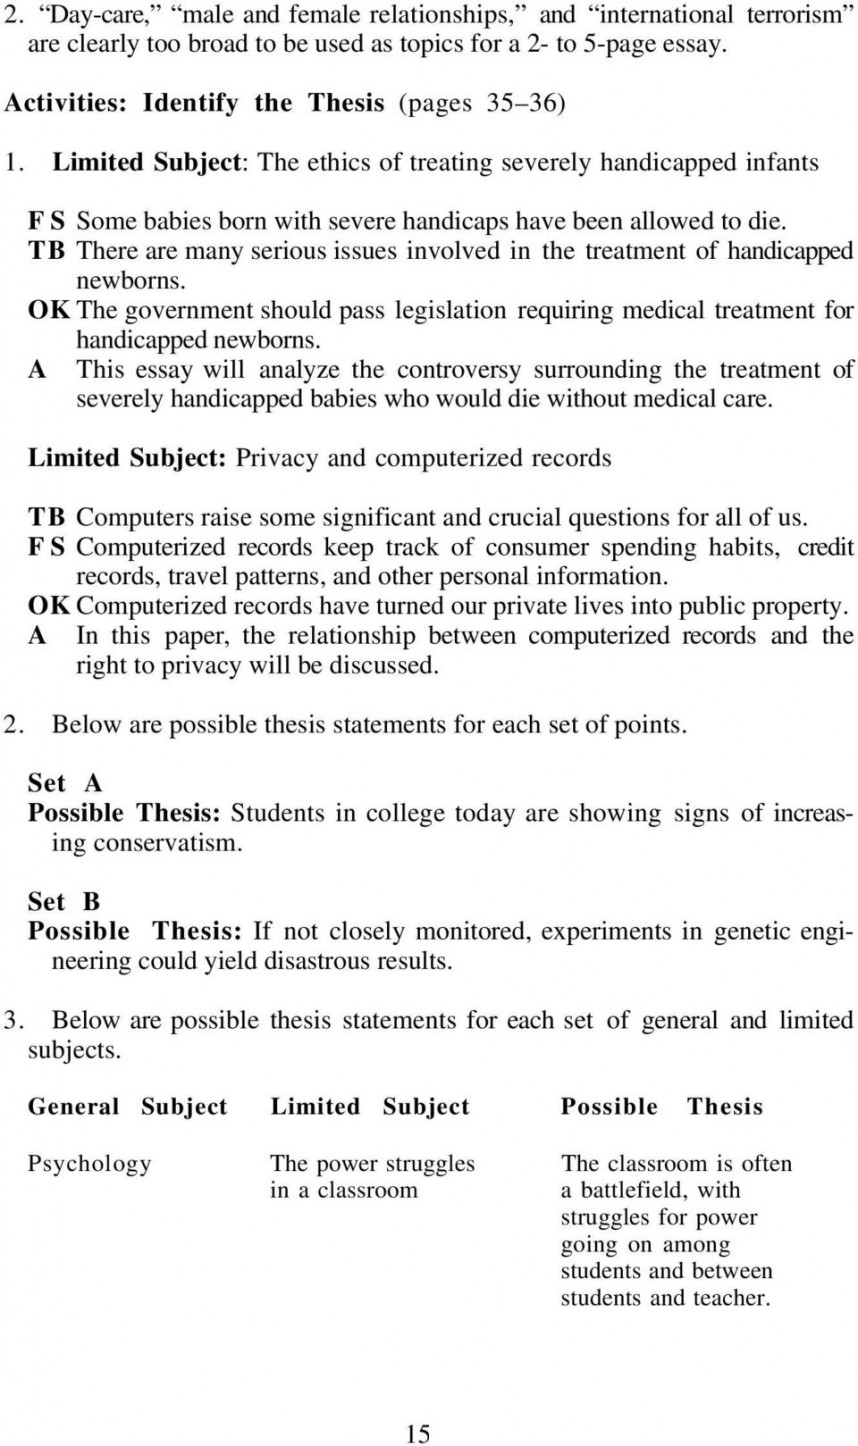 019 Page 20 Controversial Topics For Psychology Research Impressive Paper